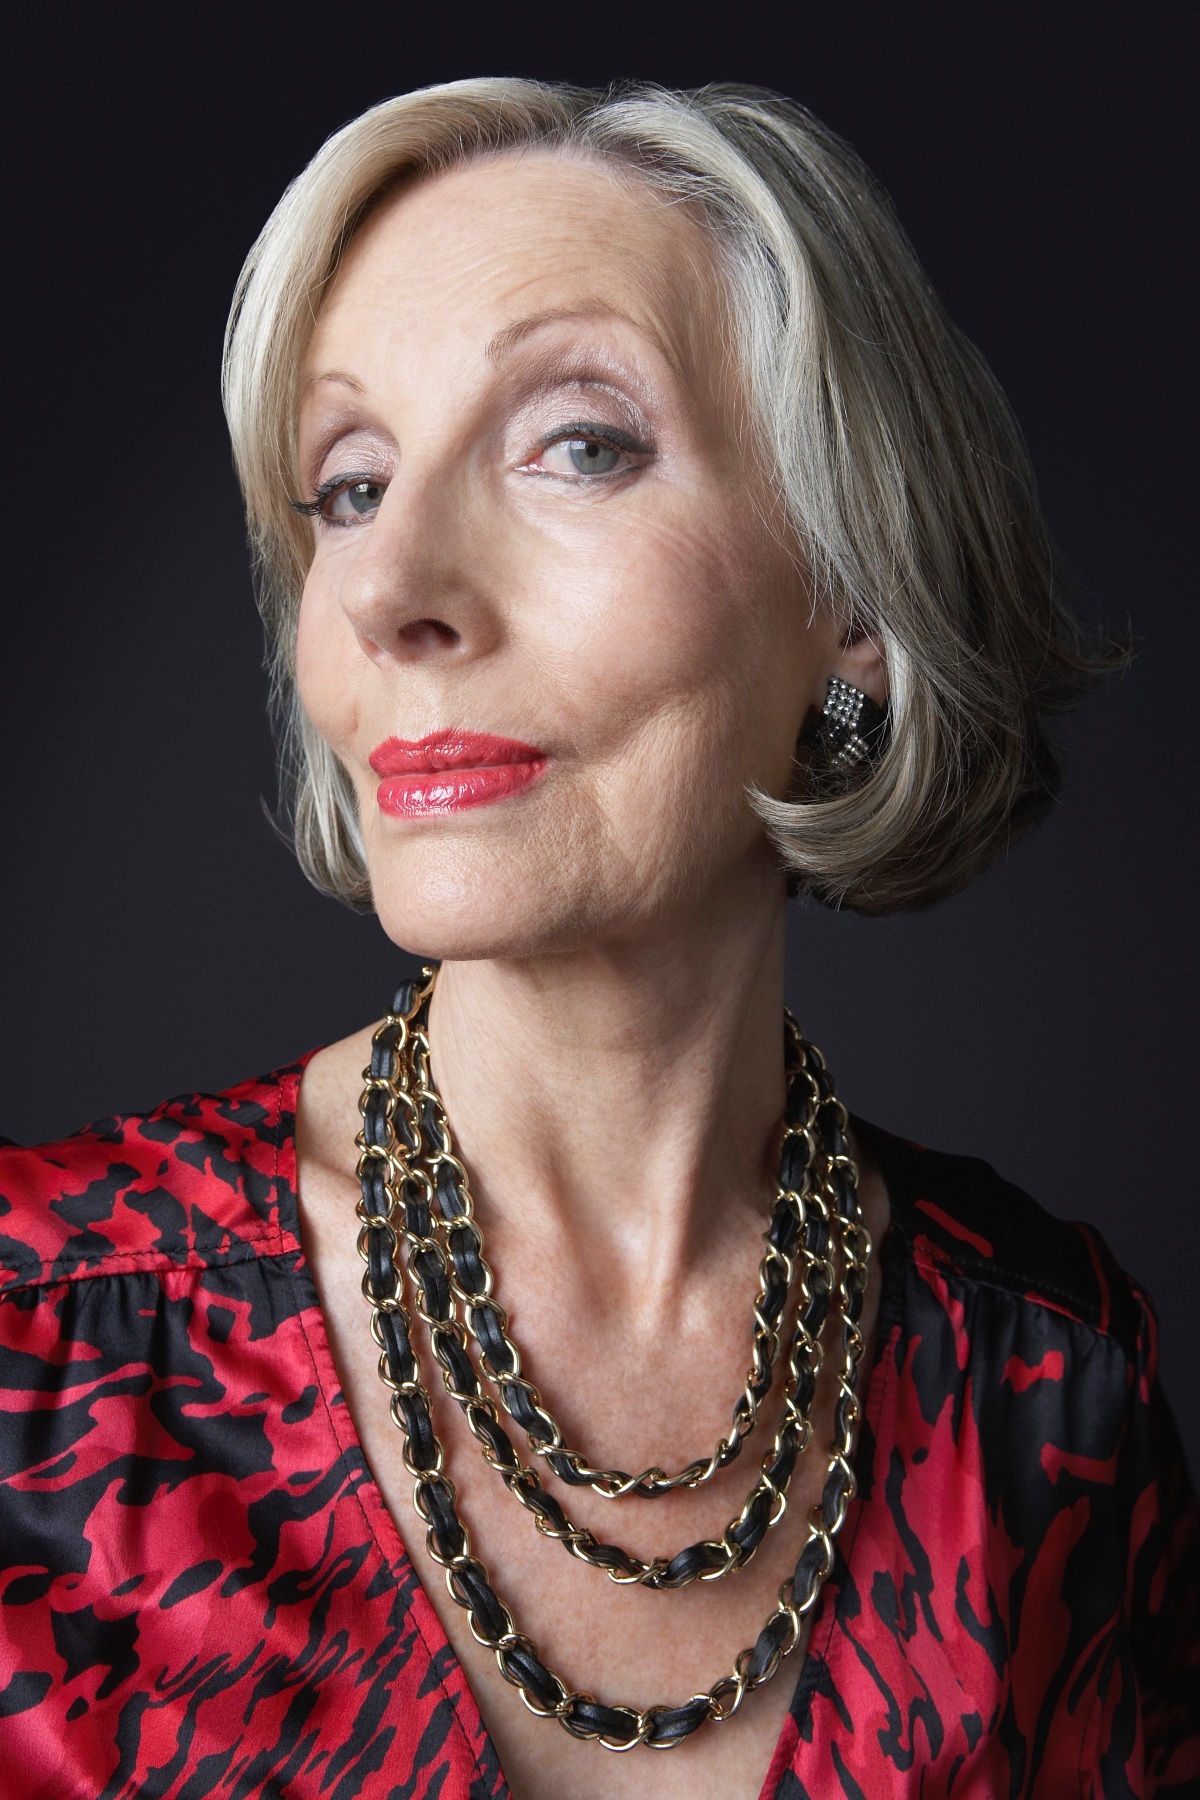 mature woman wearing red lipstick